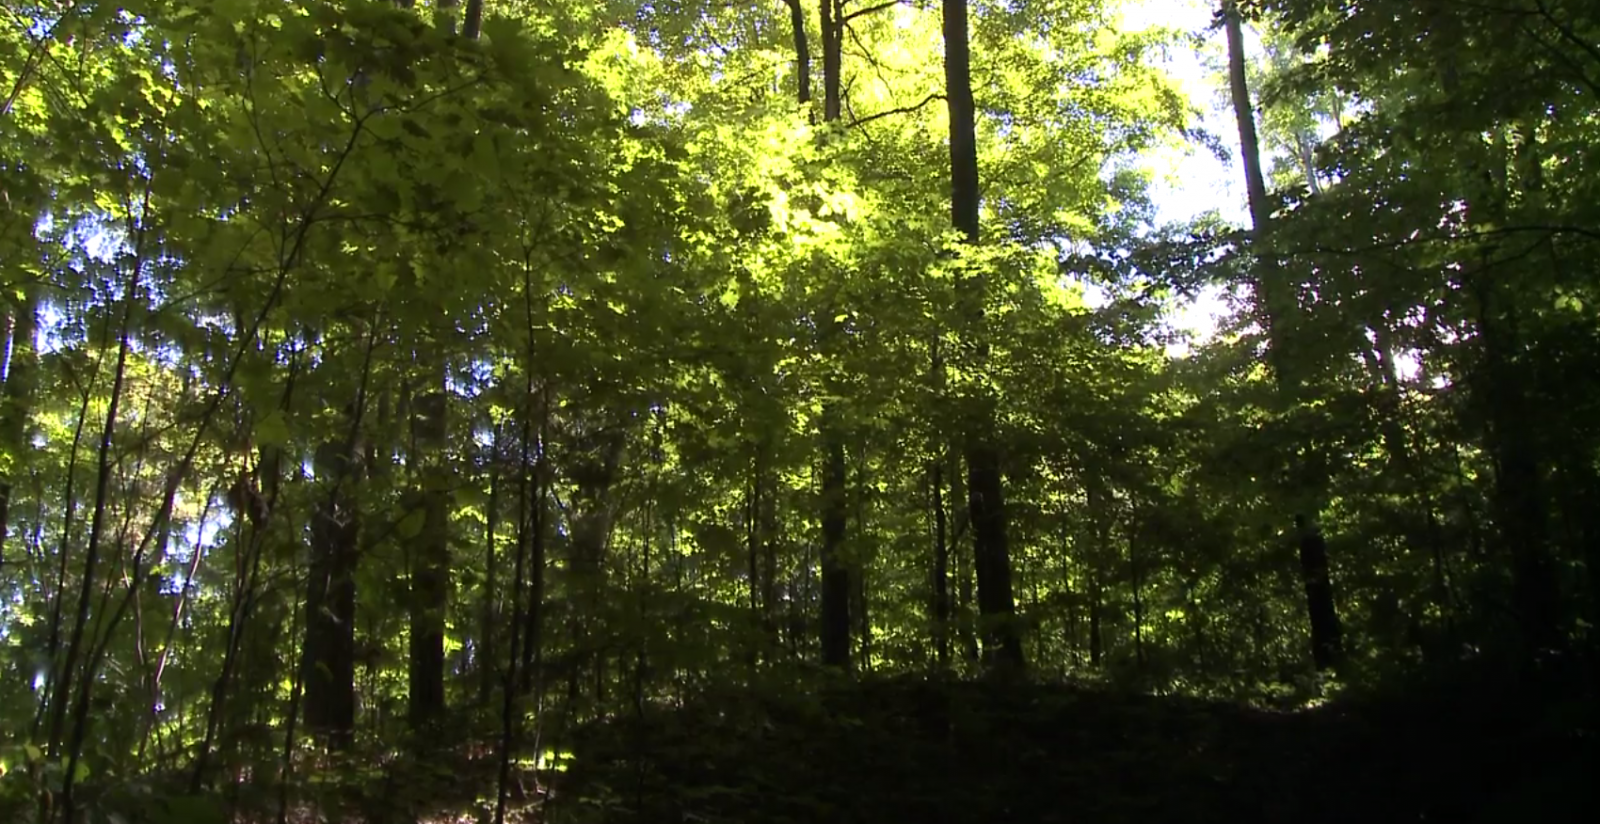 Conservationists Expand Protection For Old Growth Forest Near Toronto